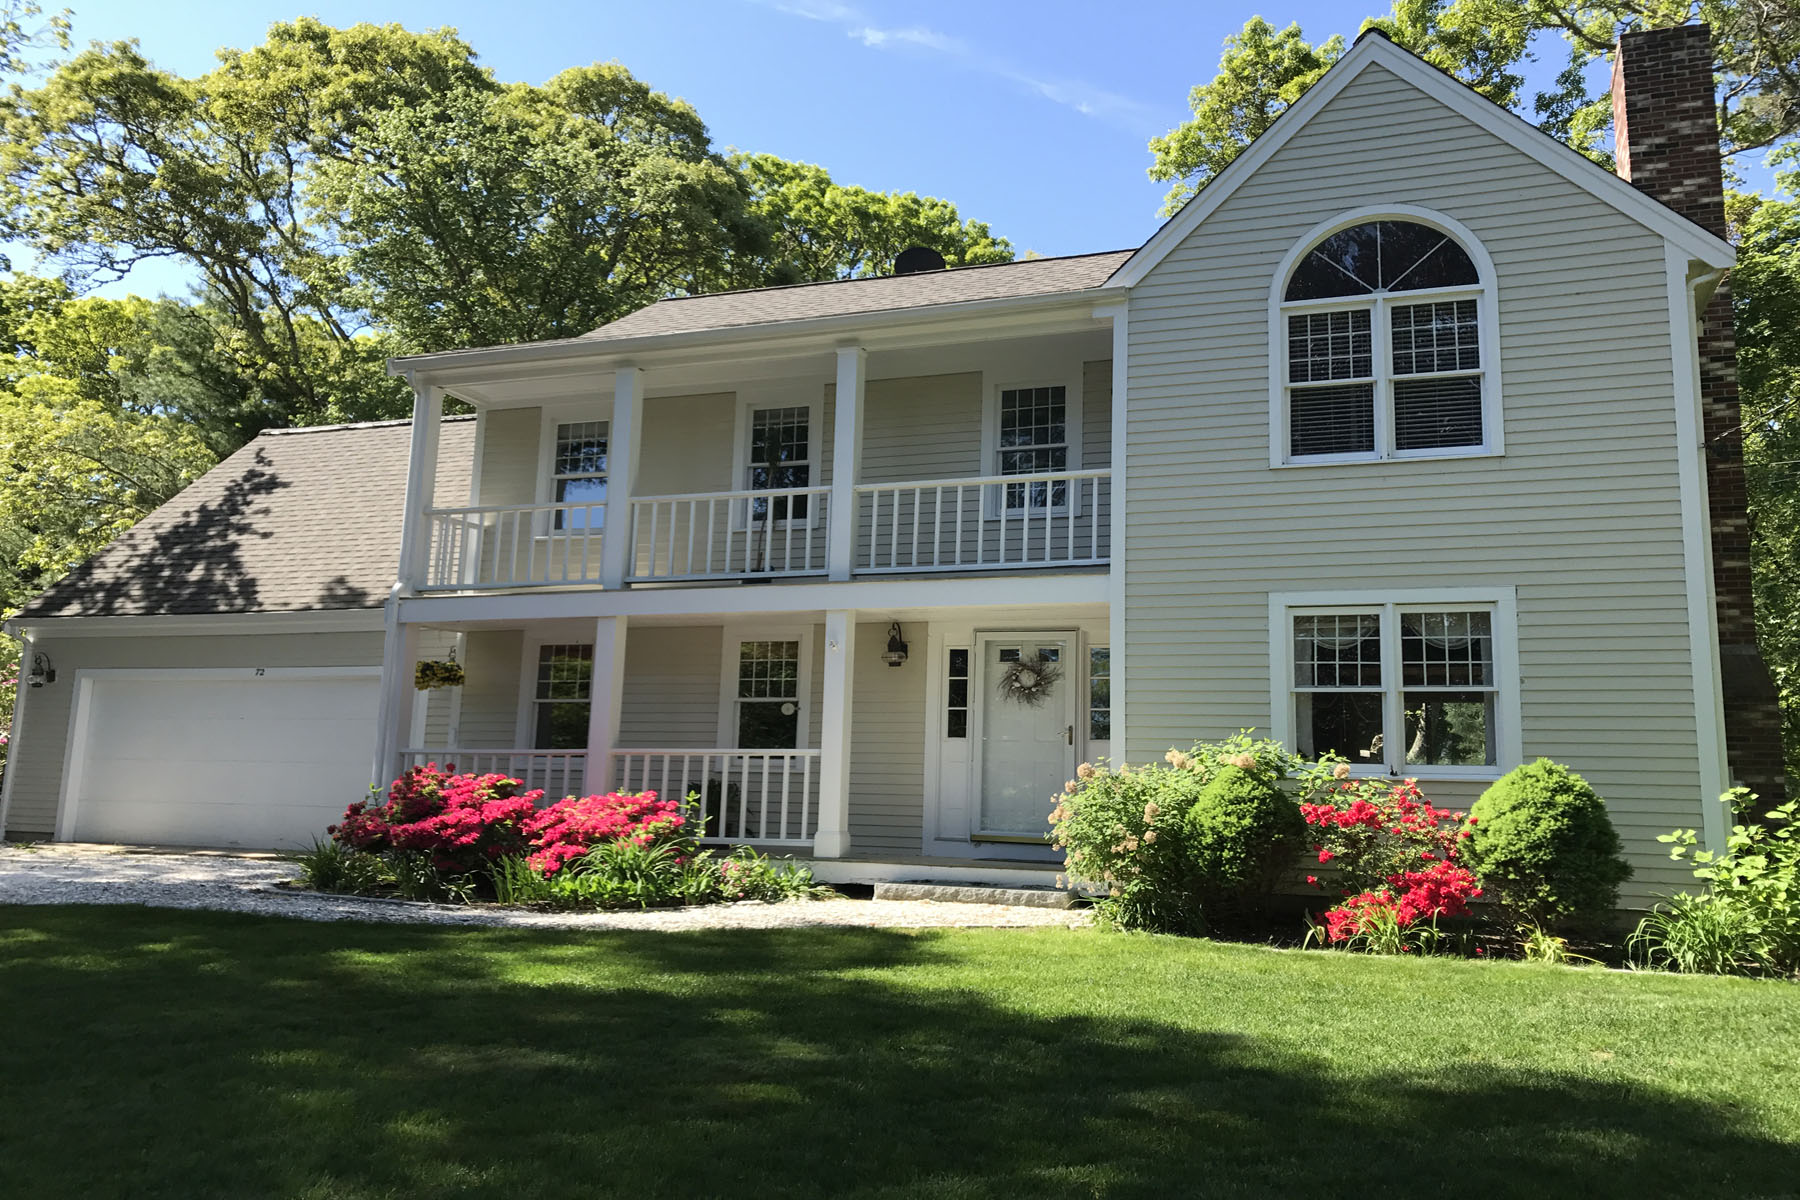 Single Family Home for Sale at GREAT HOME - GREAT LOCATION 72 Bay Road North Falmouth, Massachusetts, 02556 United States